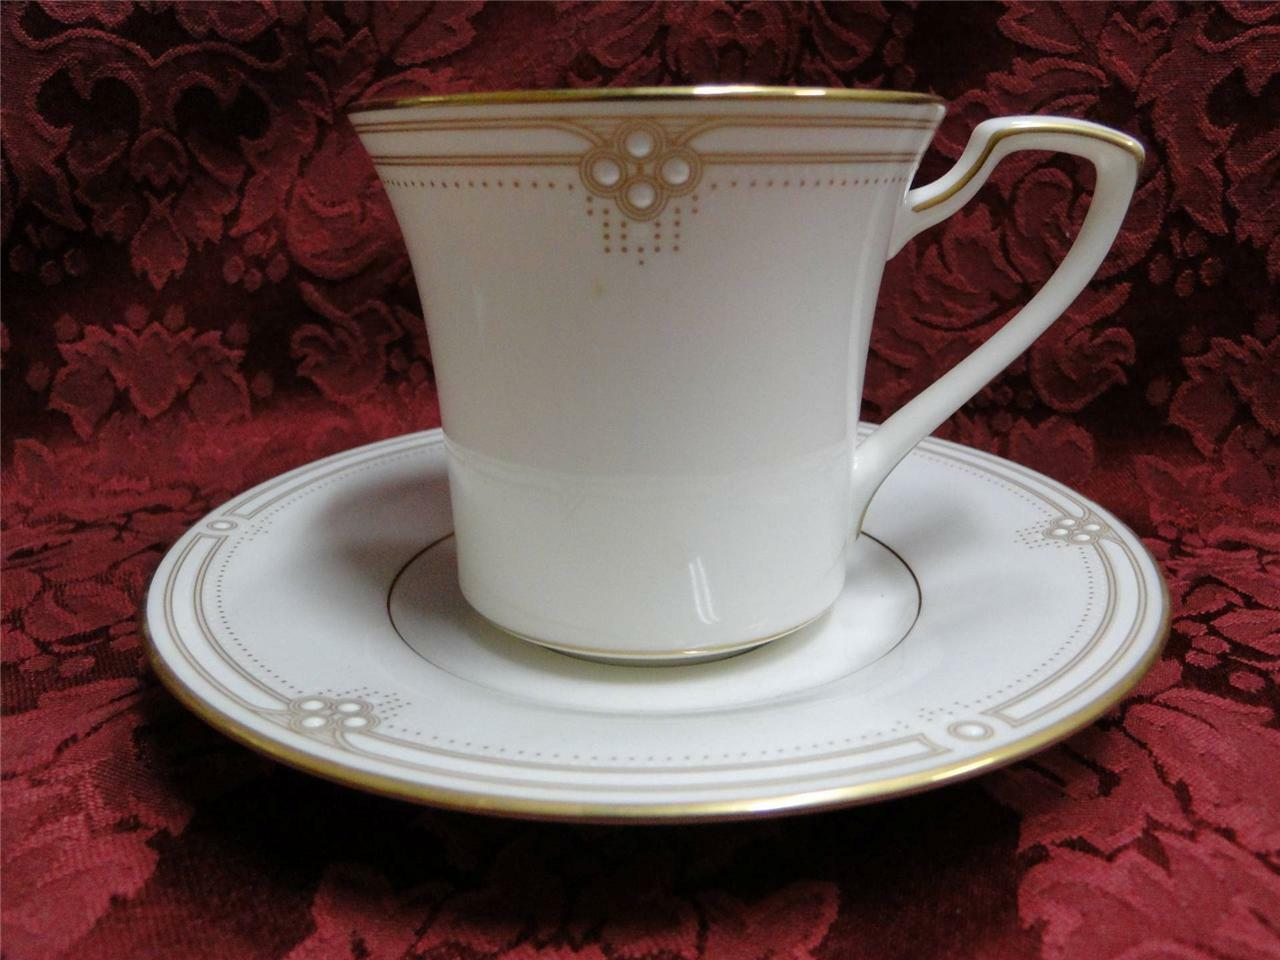 Noritake Satin Gown, Raised Dots, Gold Lines & Trim: Cup & Saucer Set (s)